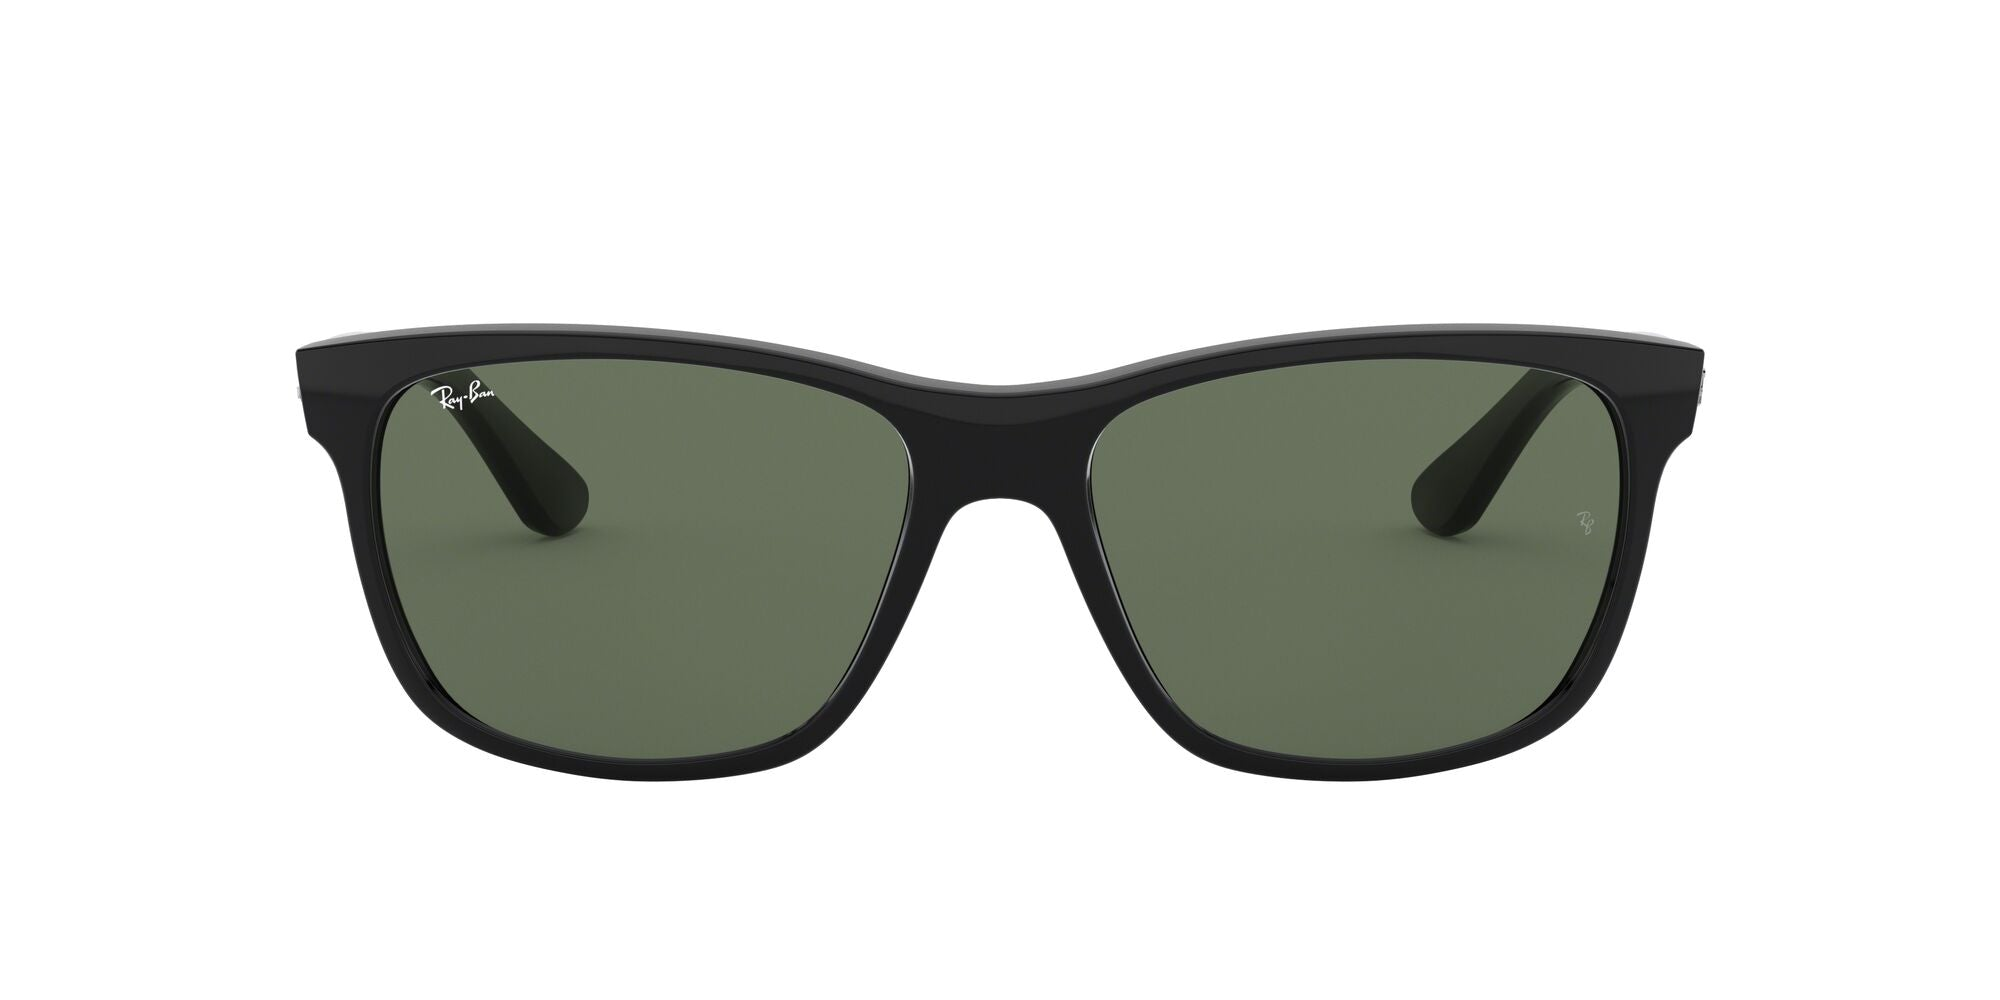 RAY-BAN 0RB4226 SUNGLASSES - OPTICIWEAR.COM